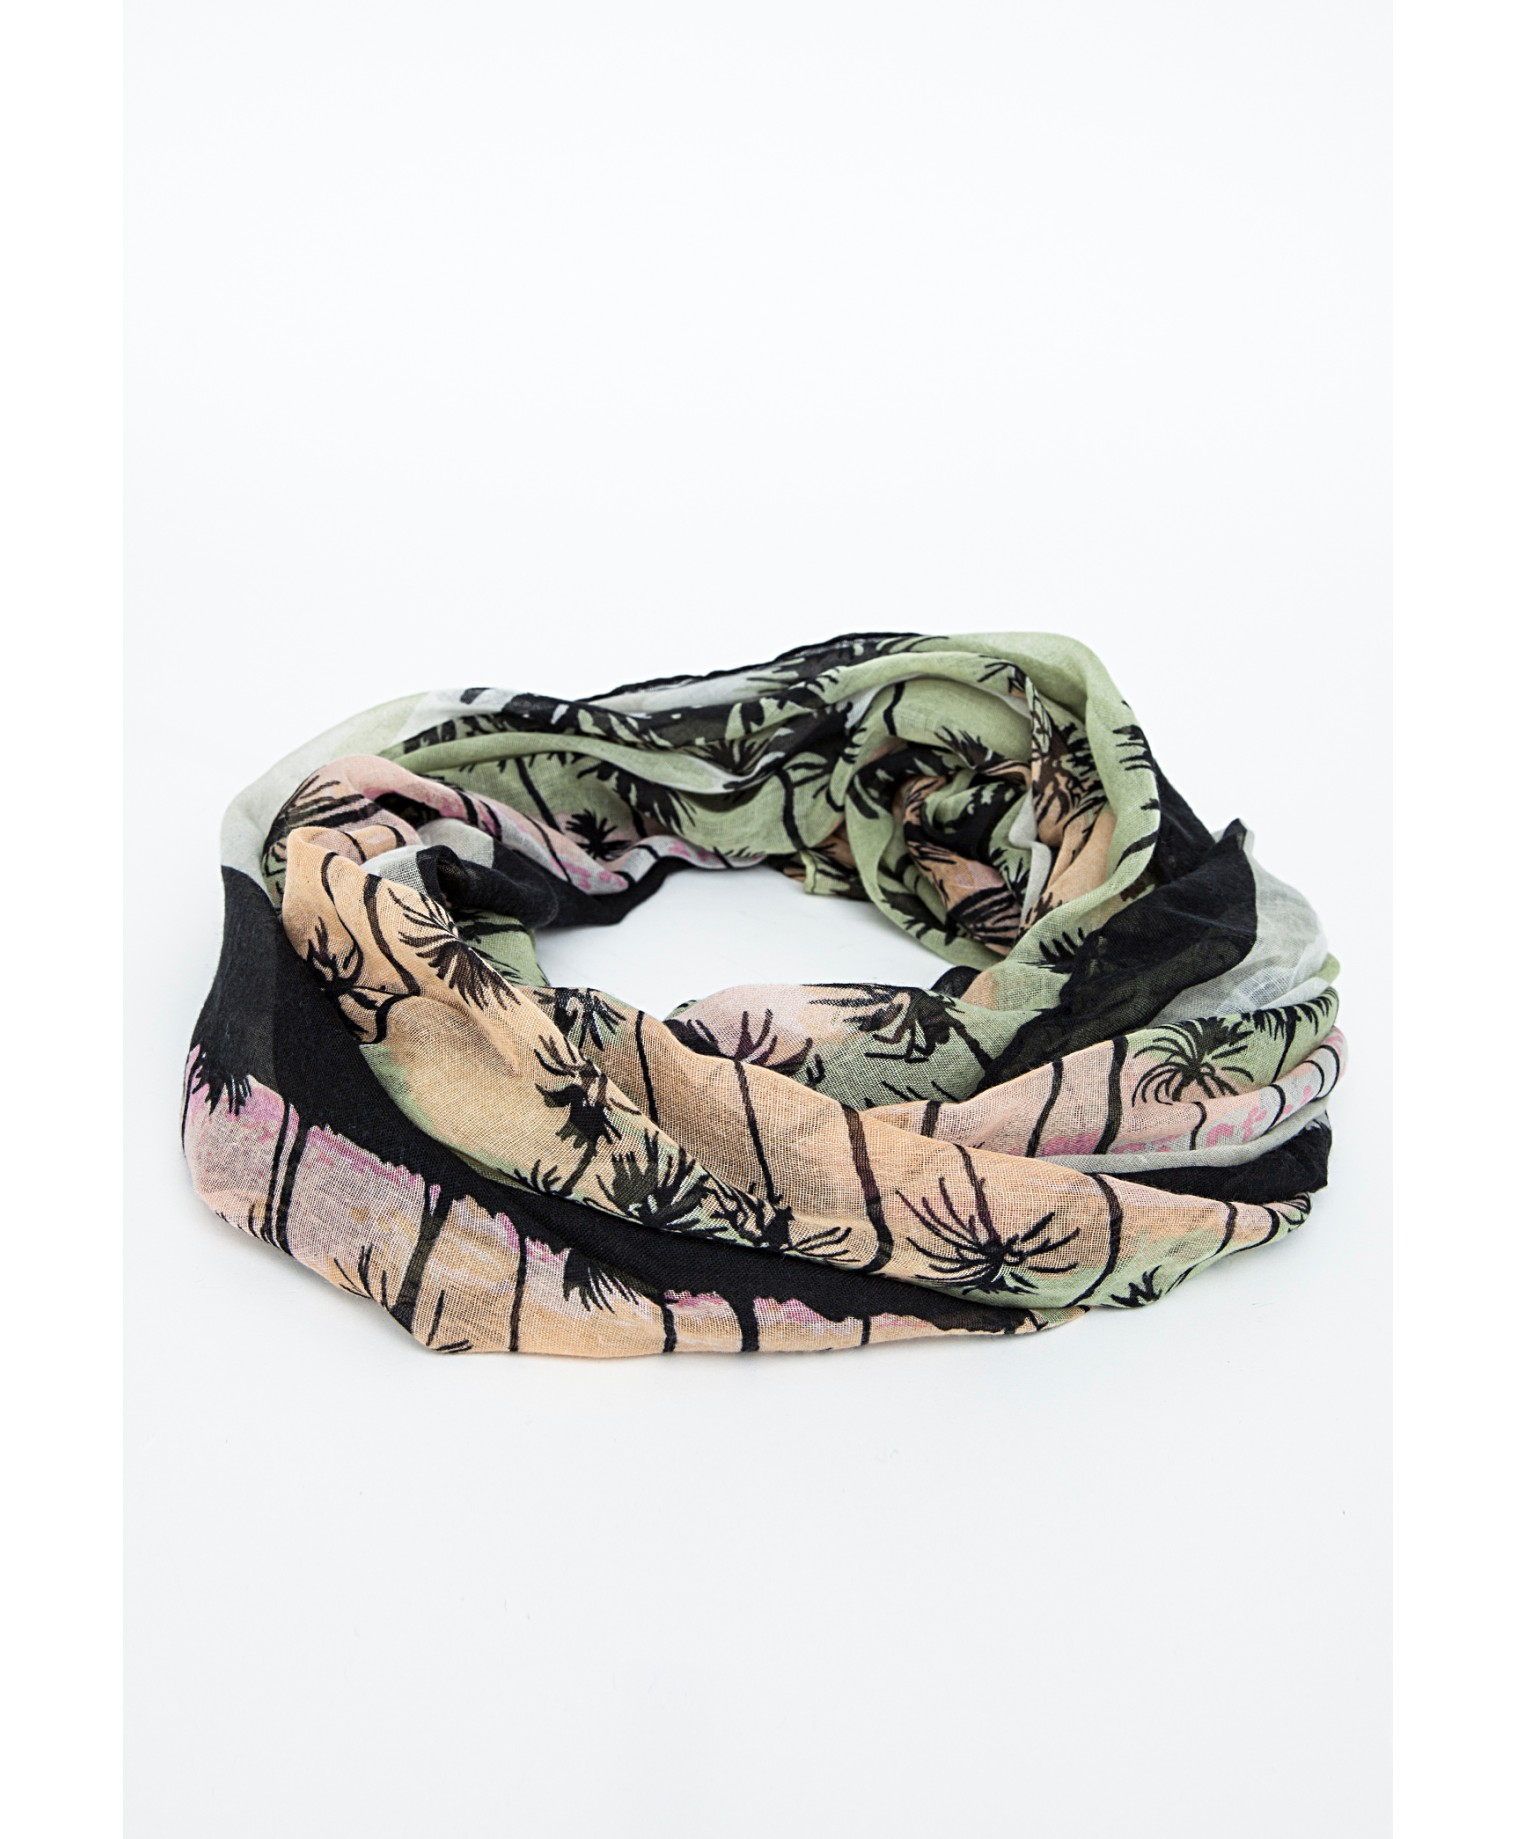 Ulca scarf in palm tree print 2